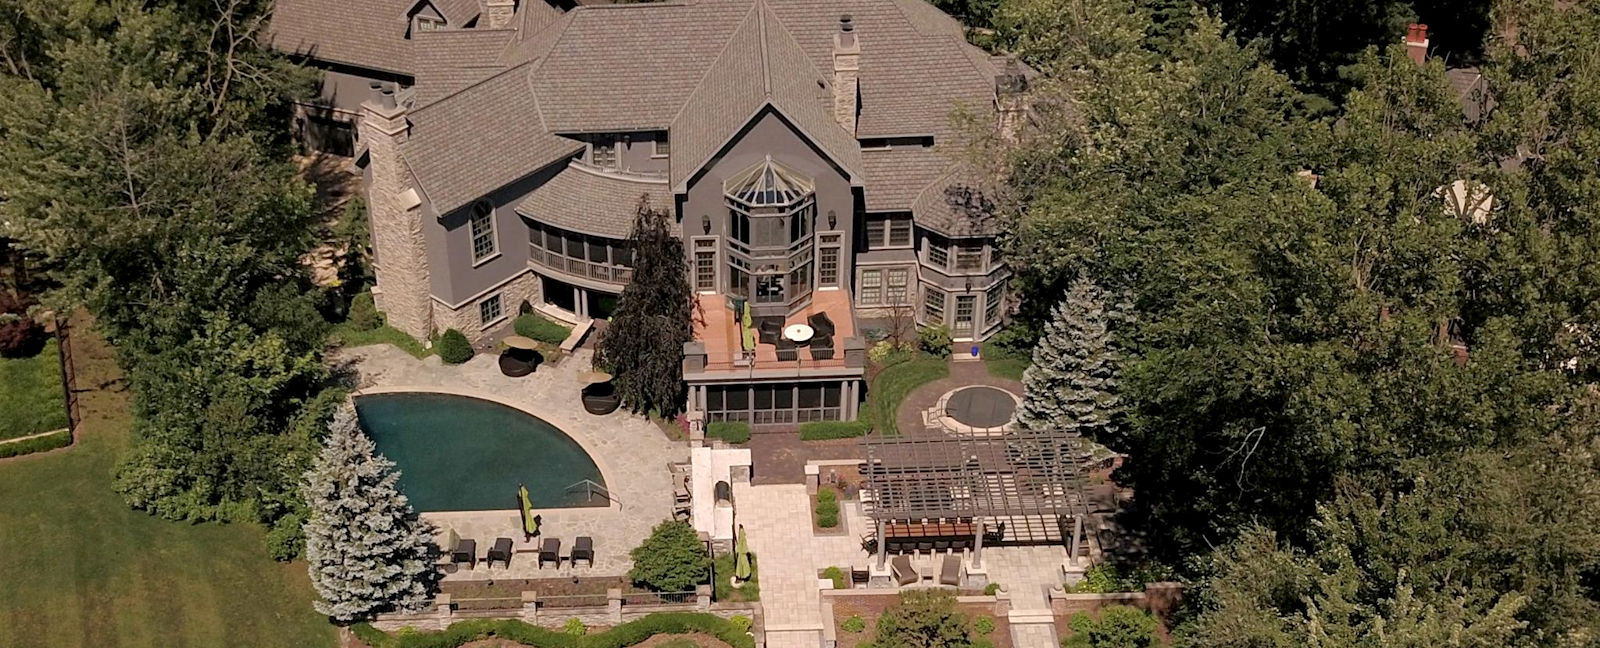 High end home design and construction in all of West Michigan - Creekside Companies